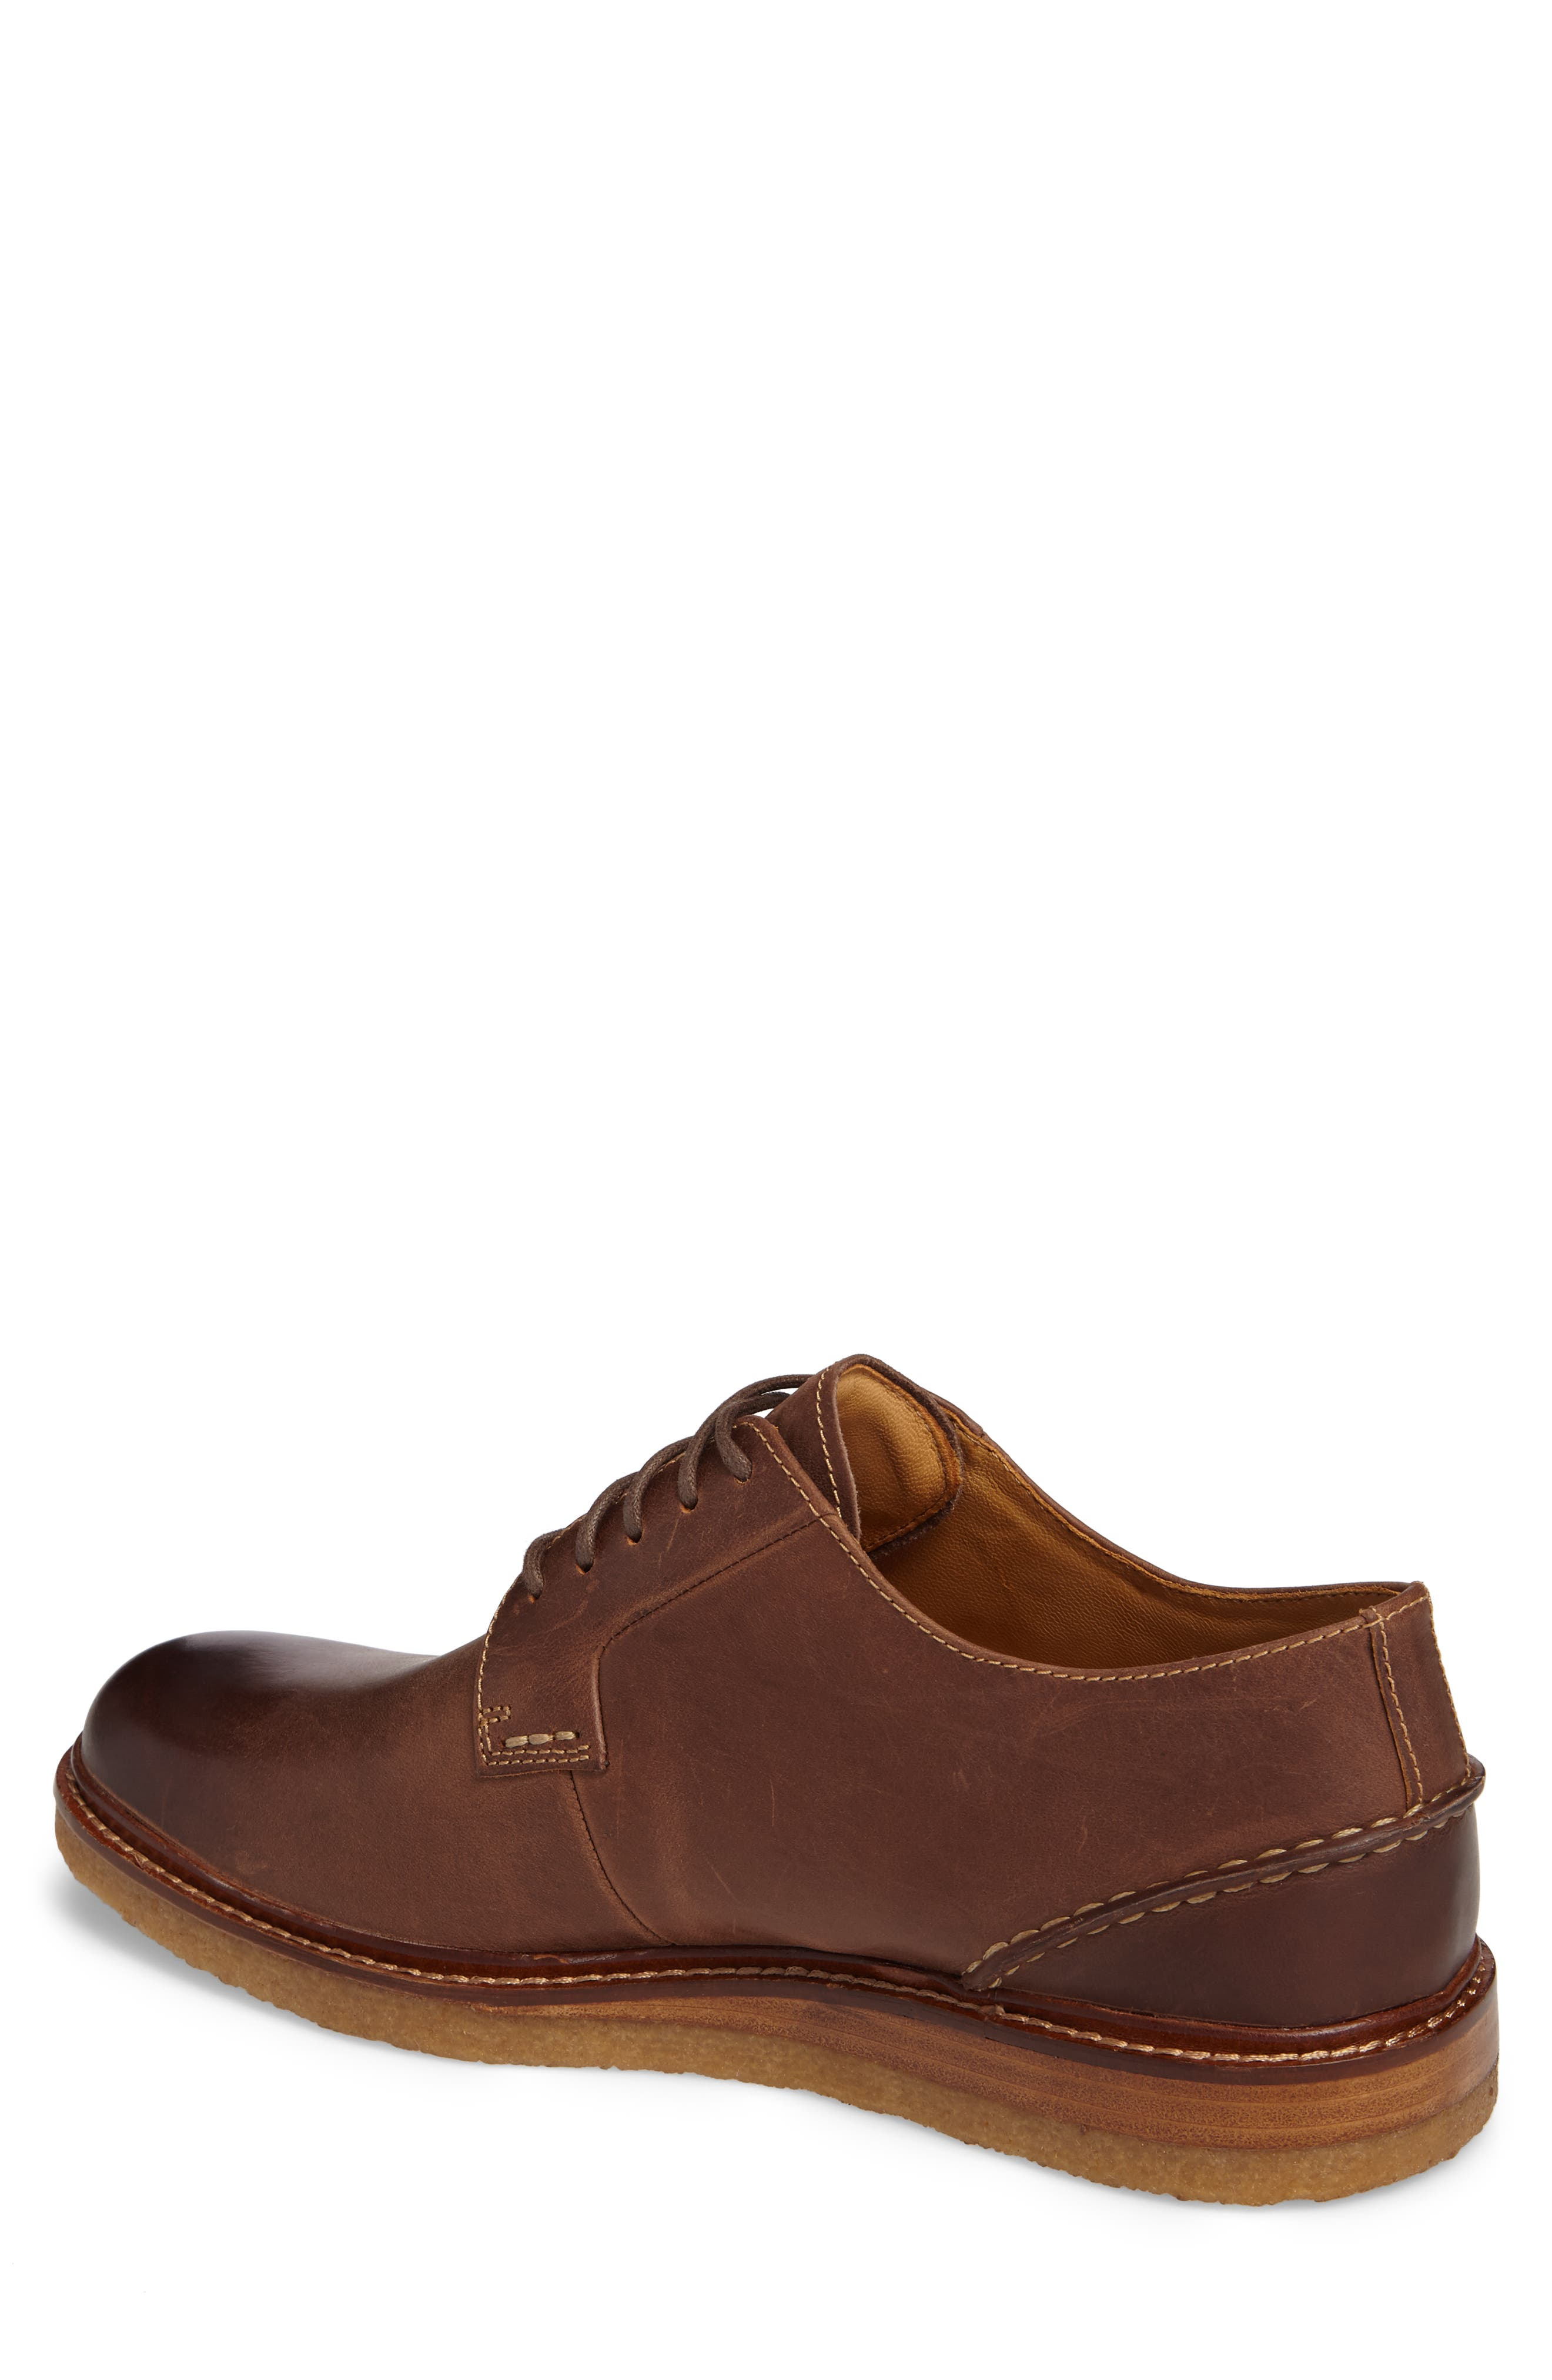 Gold Cup Plain Toe Derby,                             Alternate thumbnail 2, color,                             Brown Leather